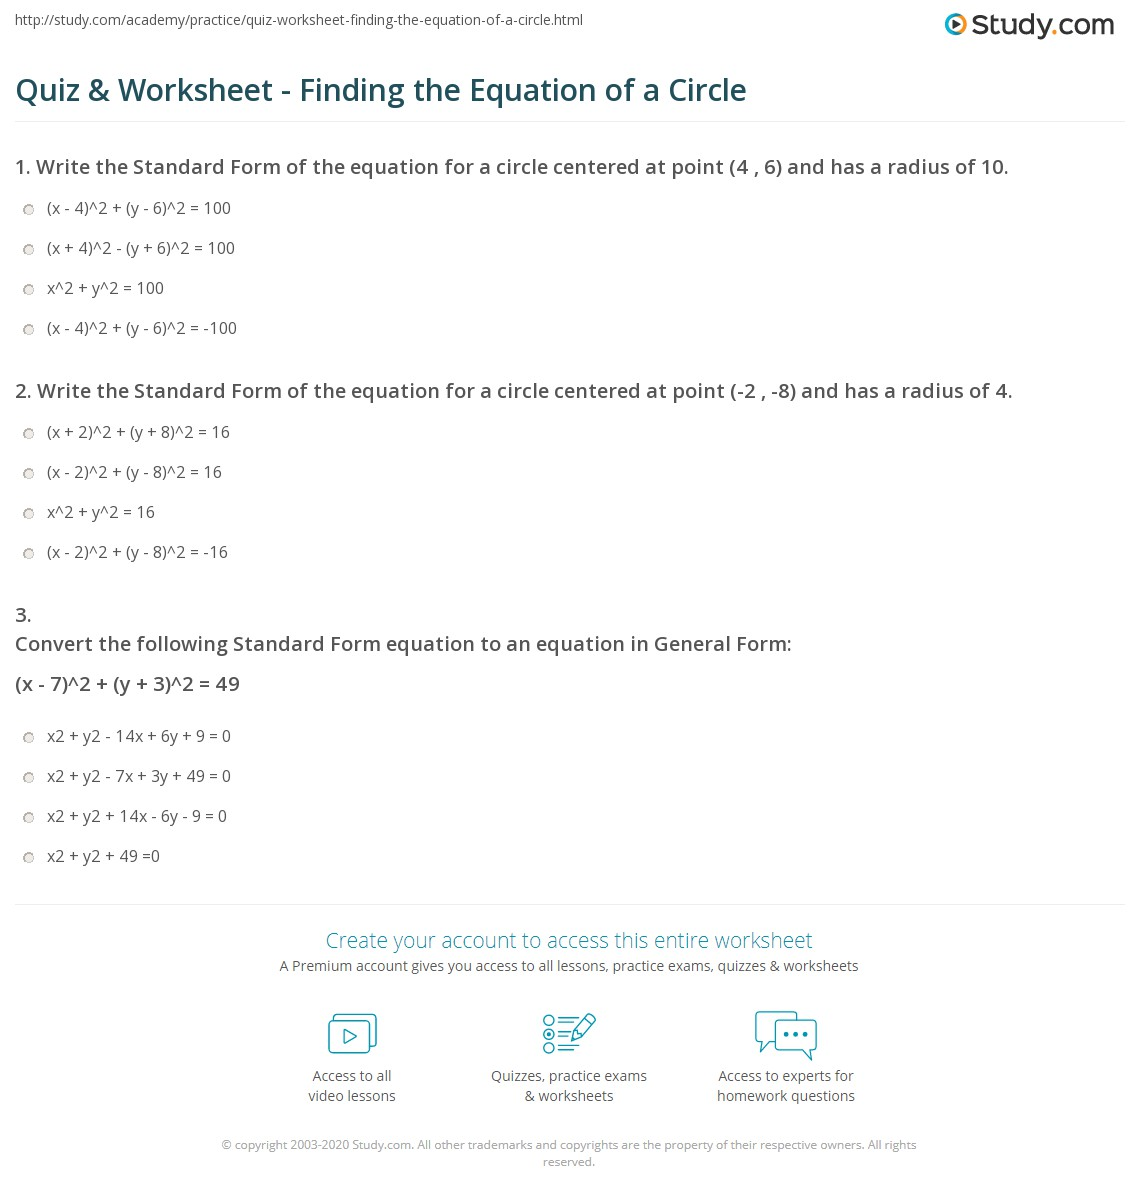 Quiz worksheet finding the equation of a circle study write the standard form of the equation for a circle centered at point 2 8 and has a radius of 4 falaconquin